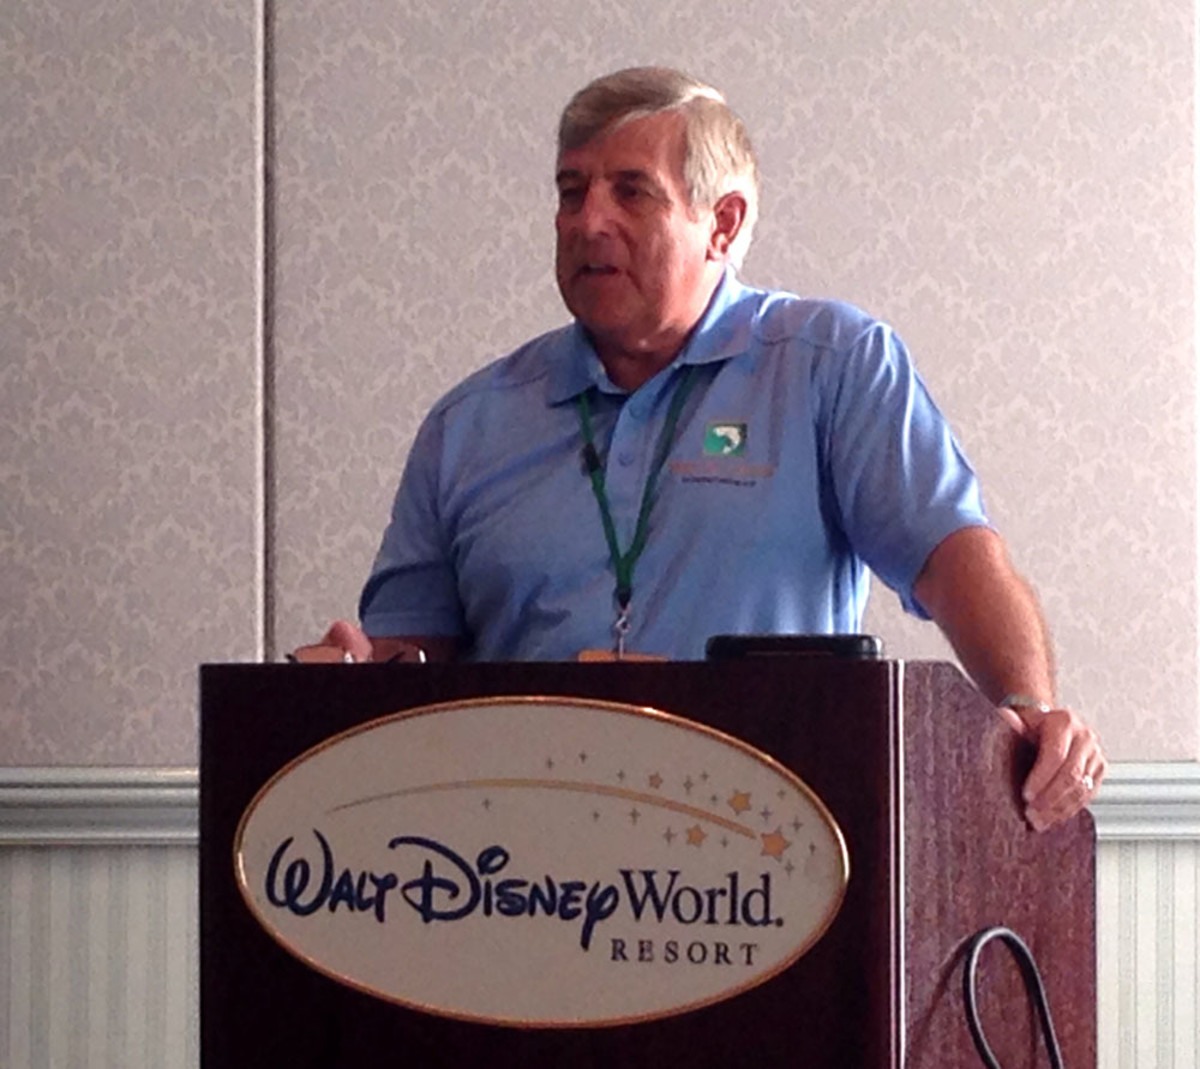 Recreational Boating and Fishing Foundation president Frank Peterson discusses the partnership between the foundation's Take Me Fishing campaign and The Walt Disney Co. Wednesday at Disney World in Orlando, Fla.